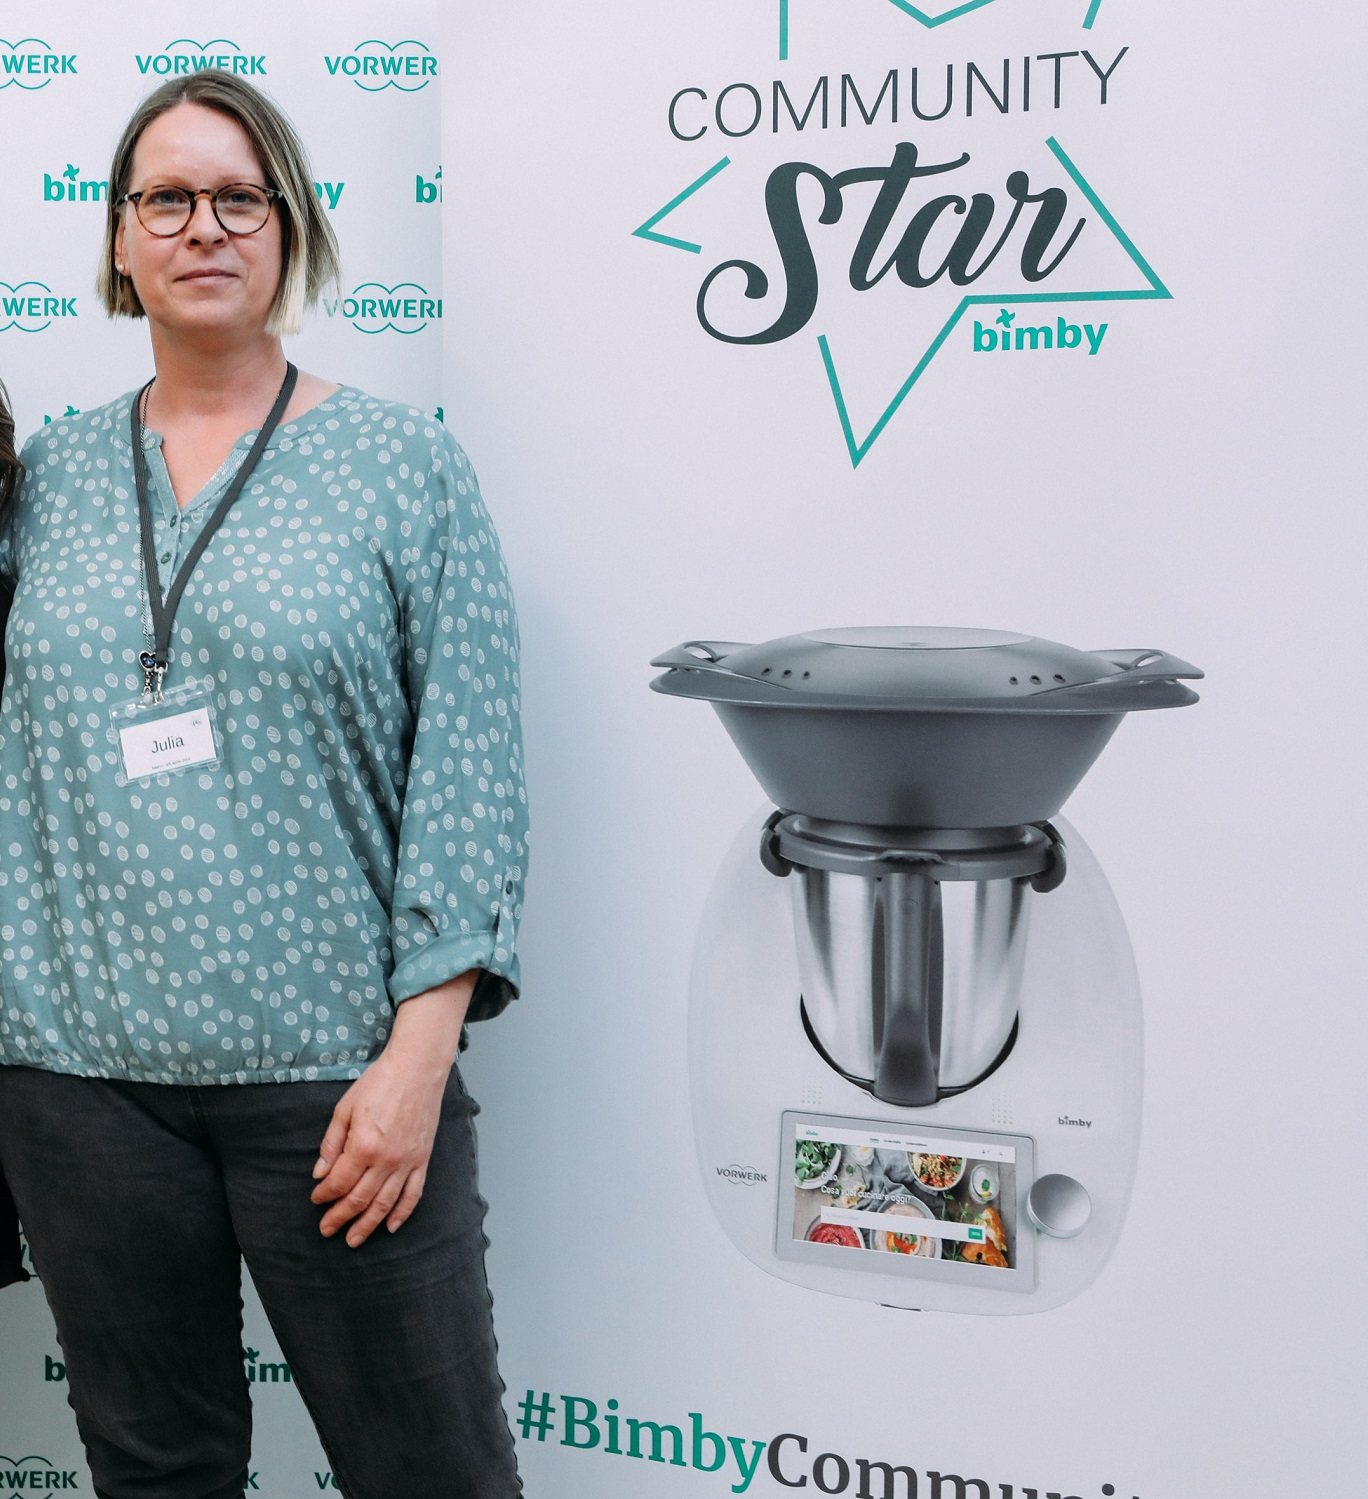 Bimby® Community Star: l'intervista a GrappaJulia